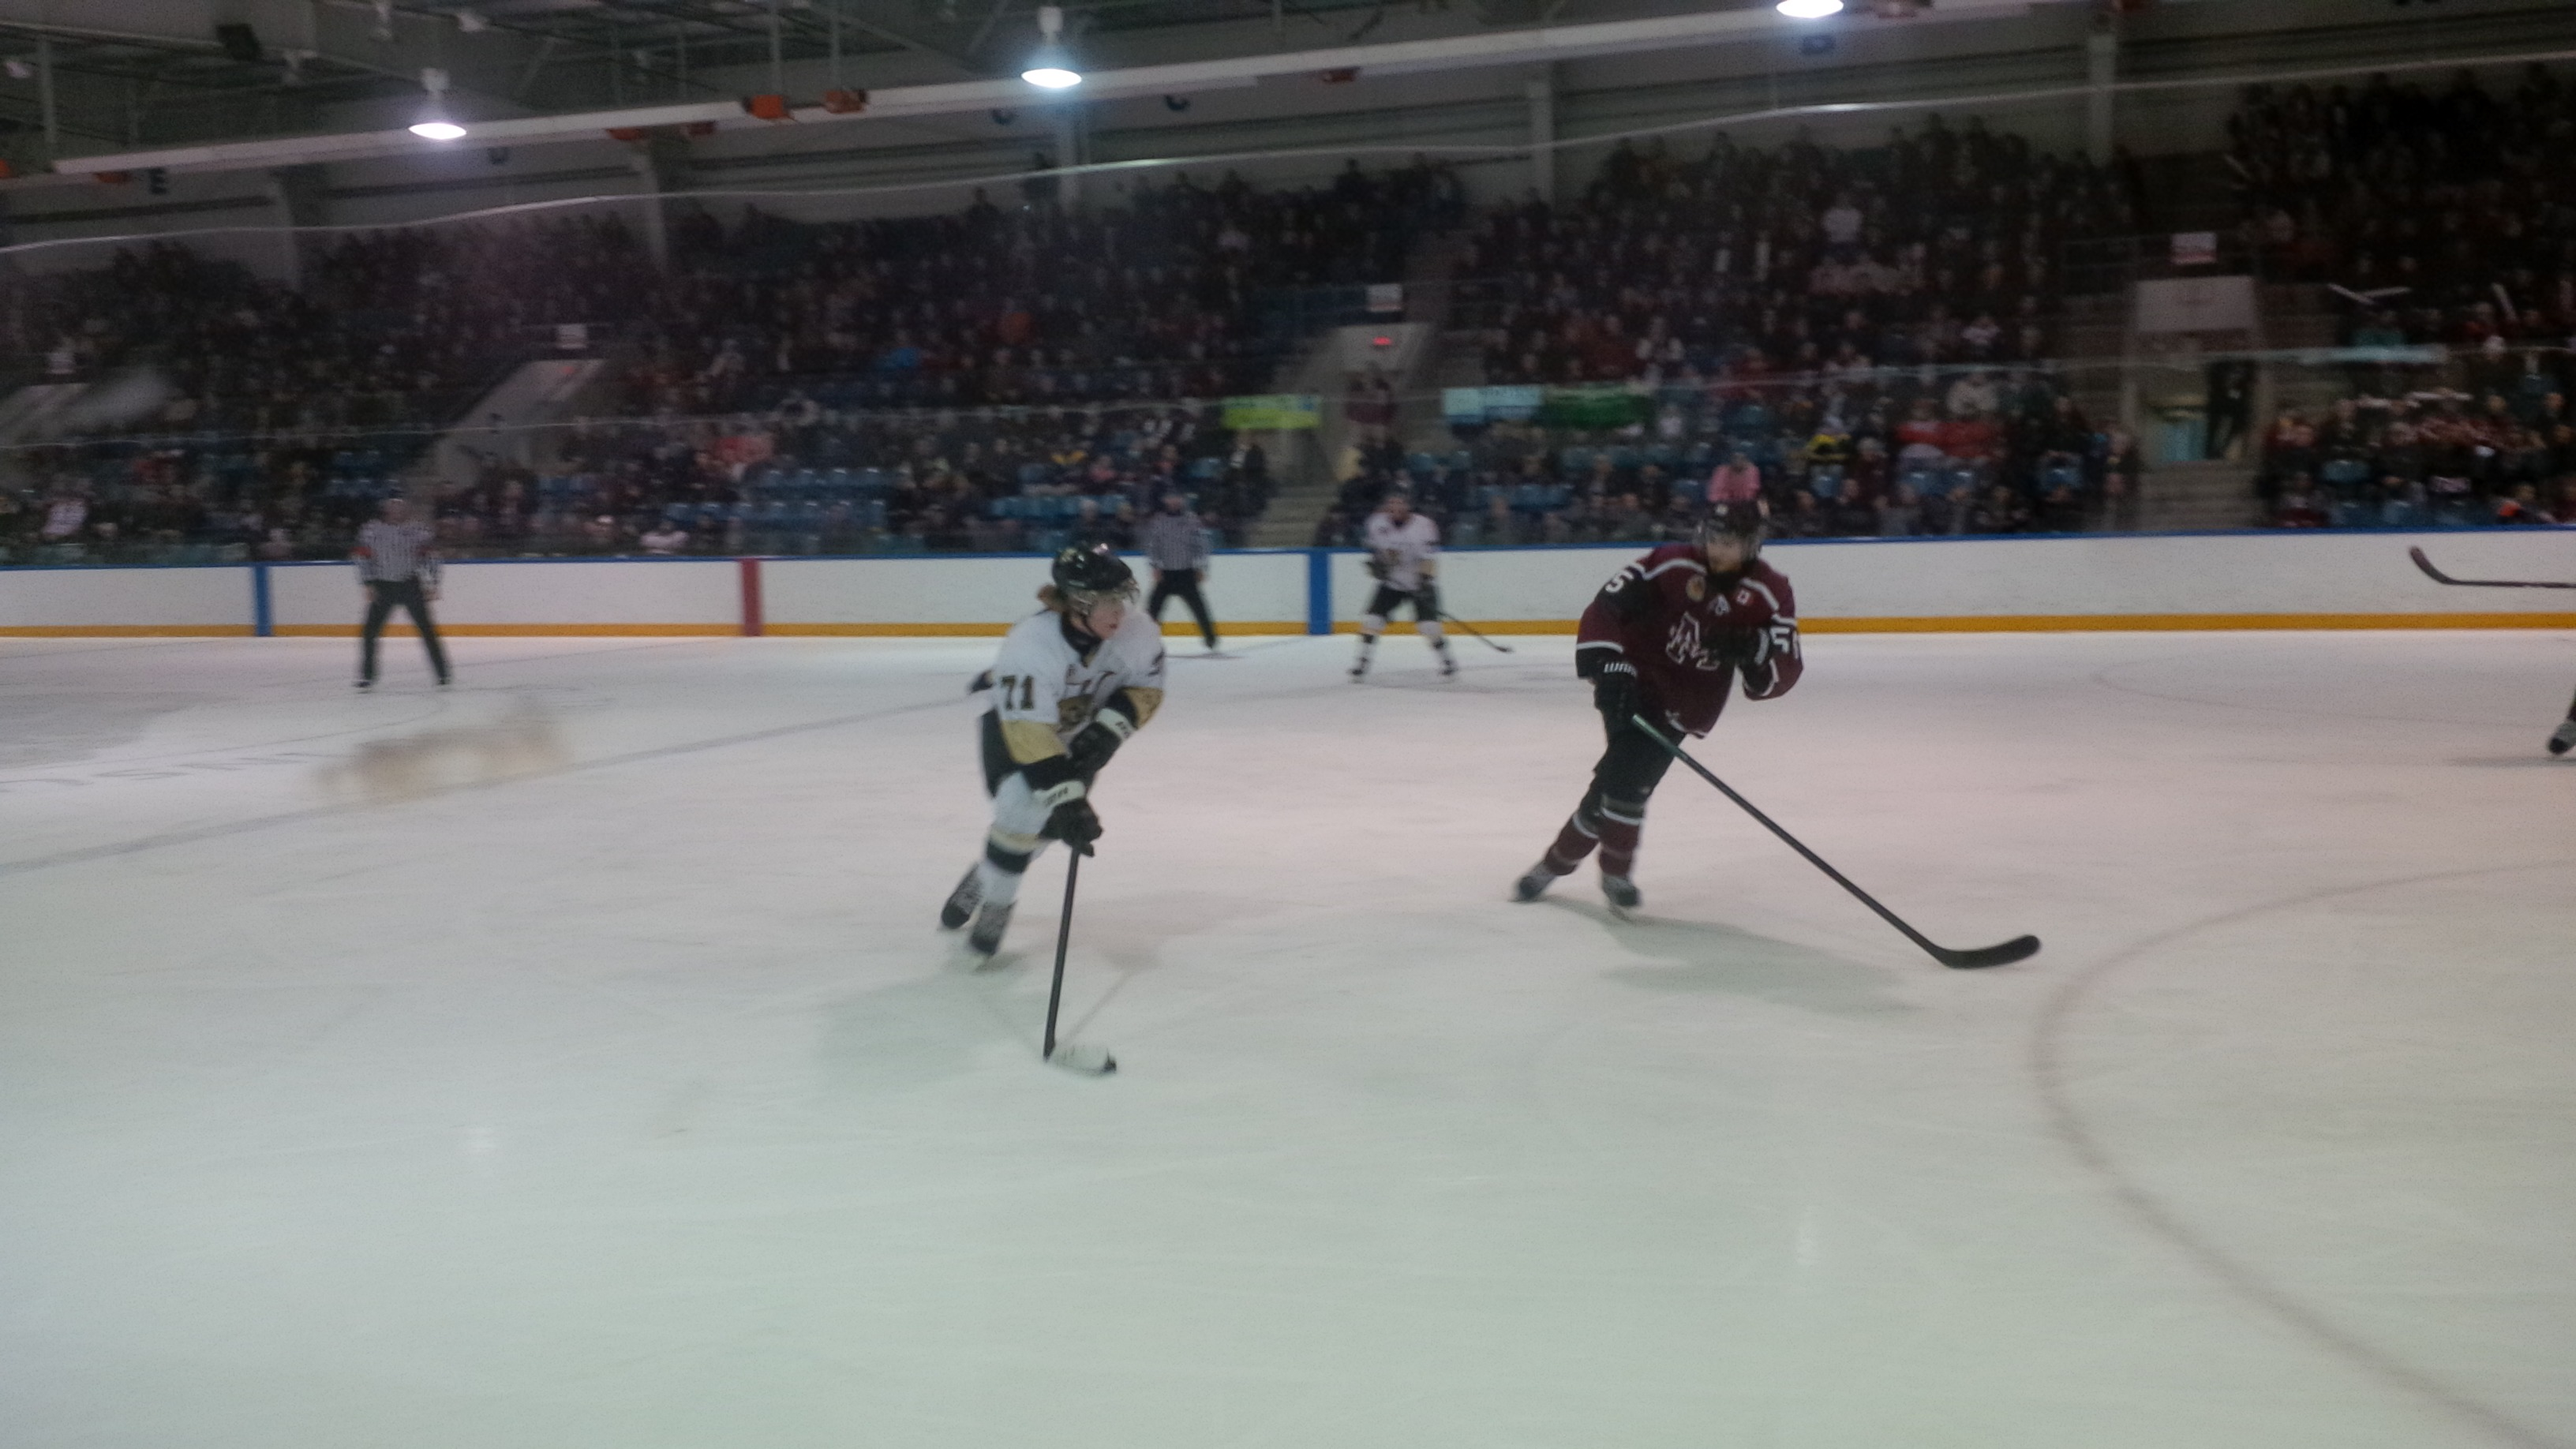 The LaSalle Vipers and the Chatham Maroons play in Game 3 of their GOJHL playoff series at the Vollmer Complex in LaSalle on March 16, 2014. (Ricardo Veneza)